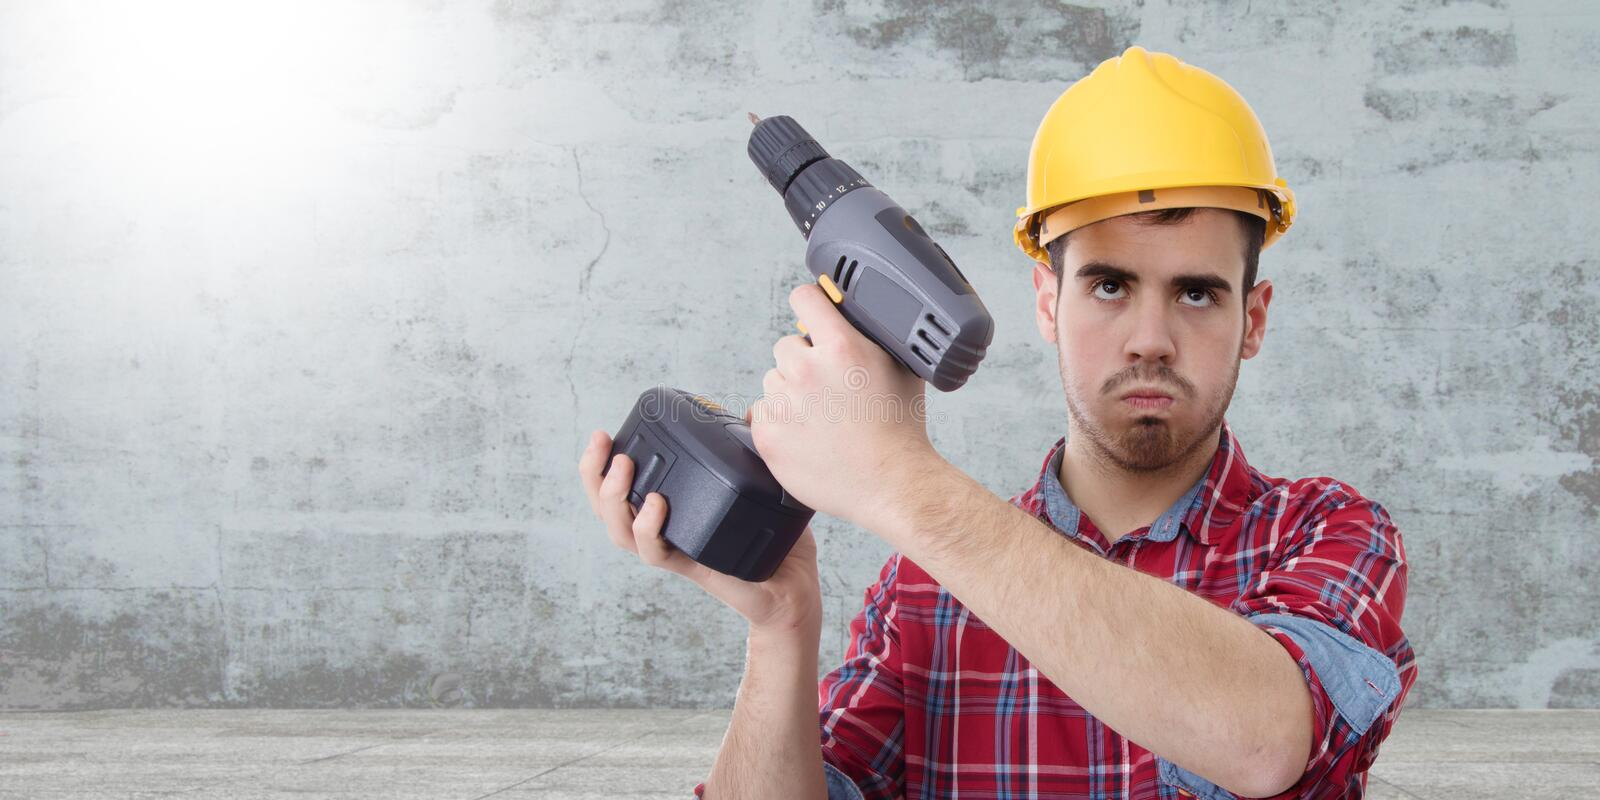 Constructor with drill. Renovations, repairs and bricolage royalty free stock image